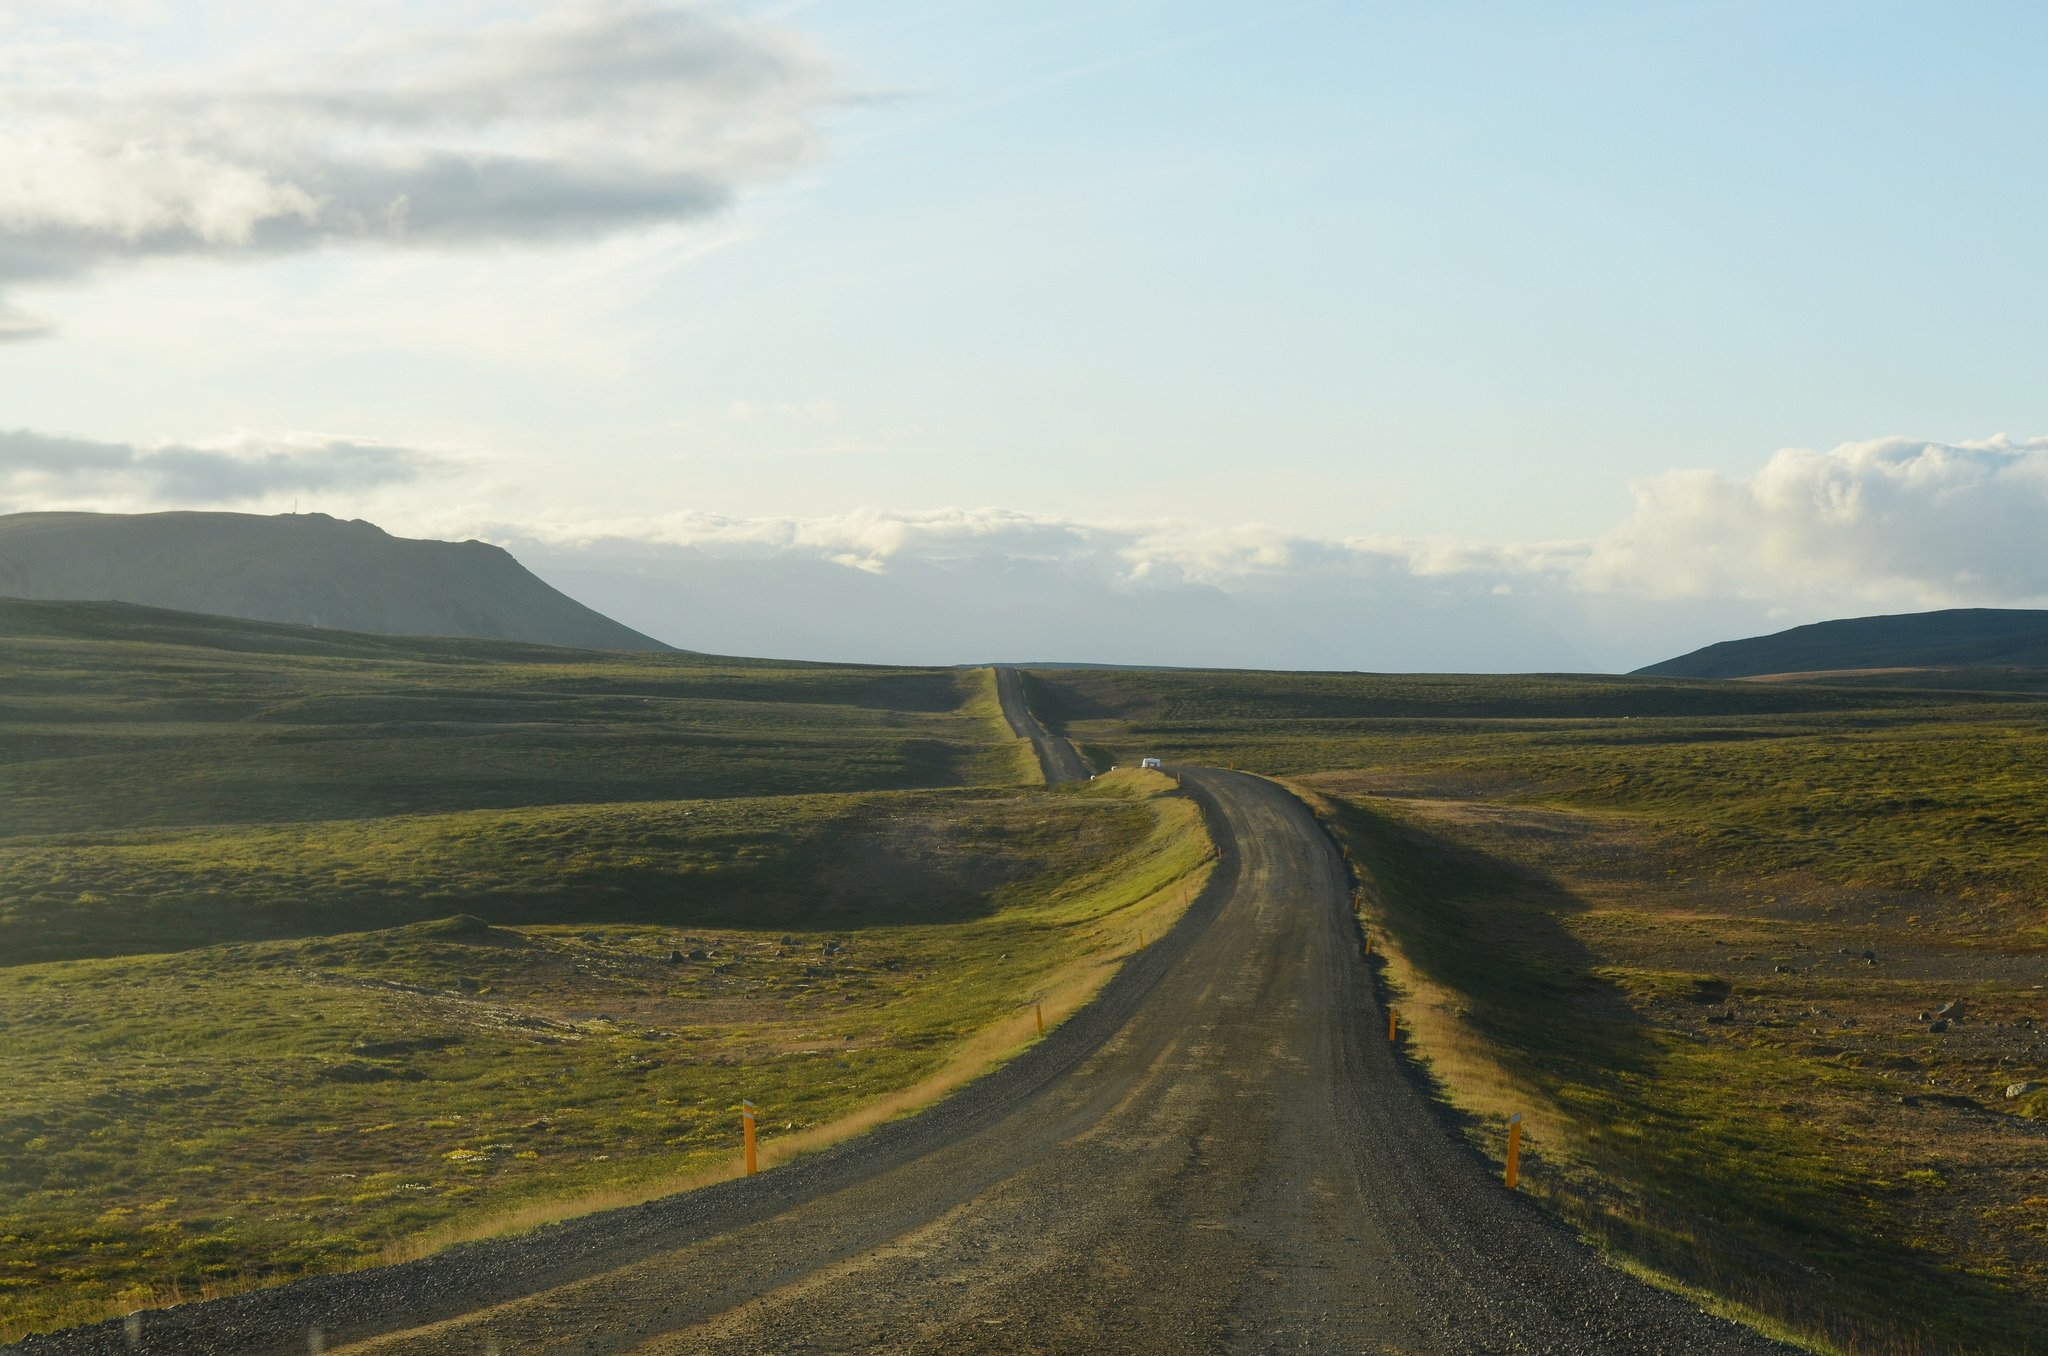 On the road near Myvatn by Nick (CC)